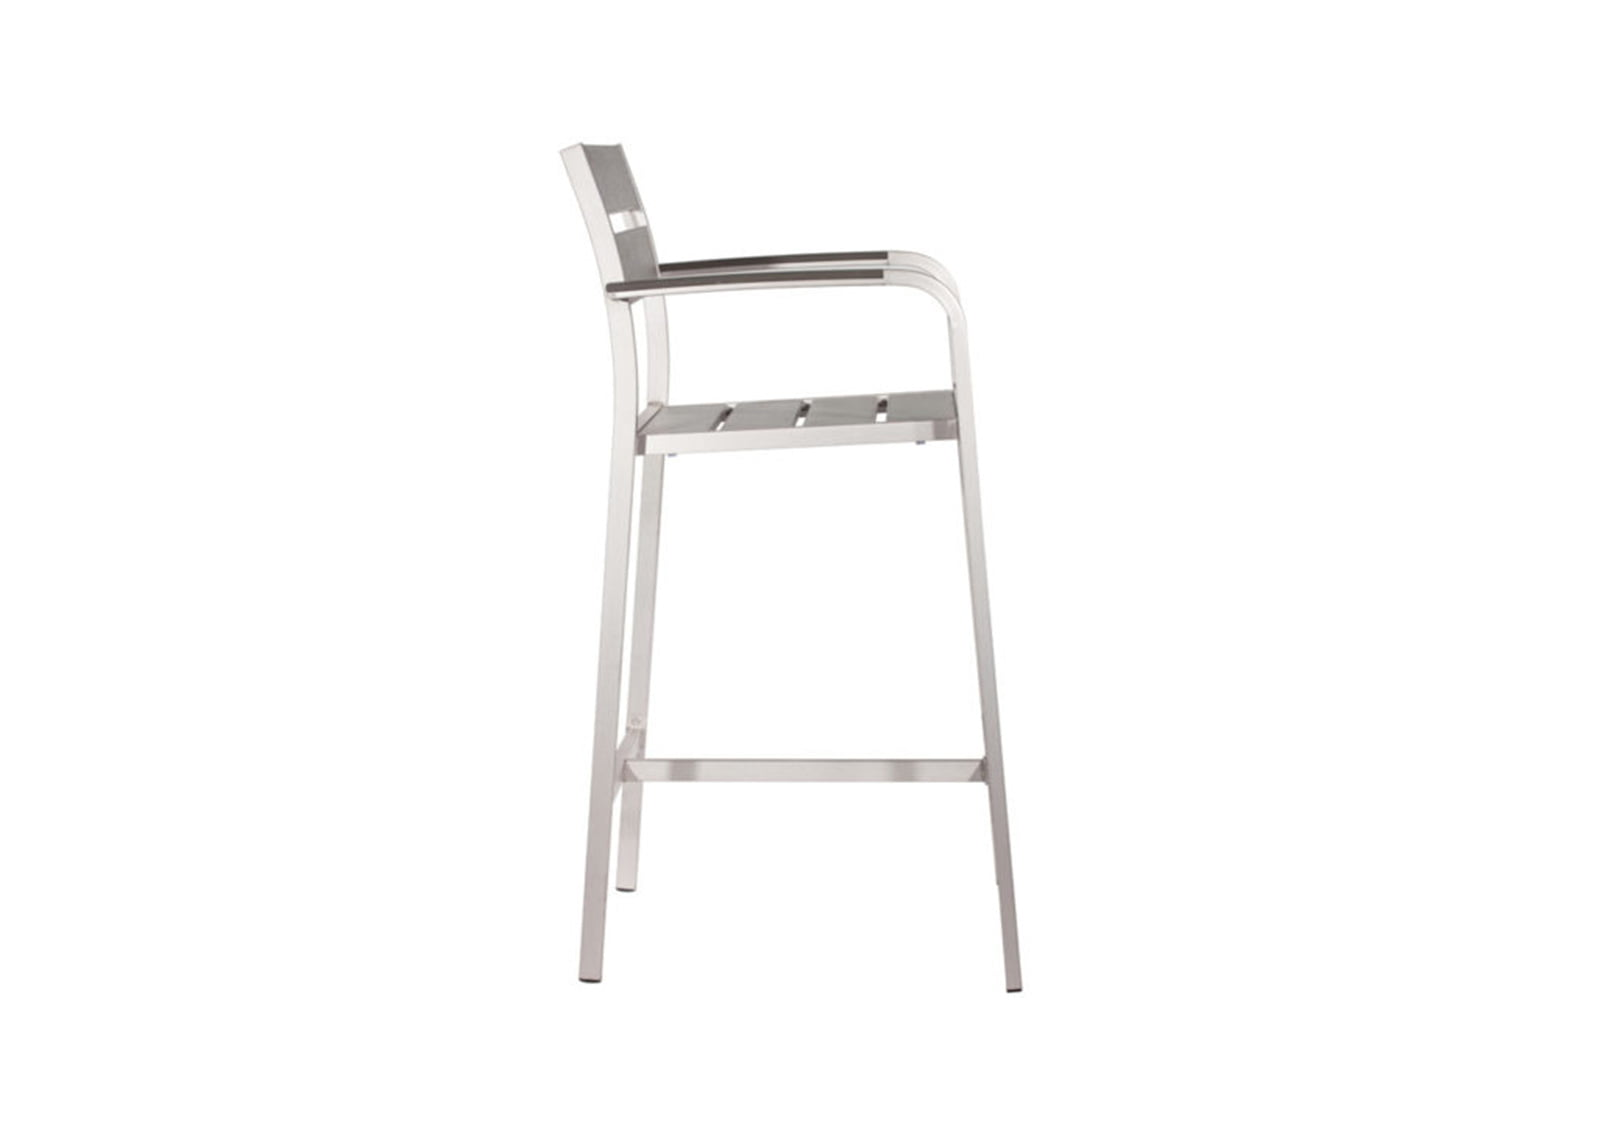 brushed aluminum chairs florida electric chair pictures megapolis bar arm furnishplus